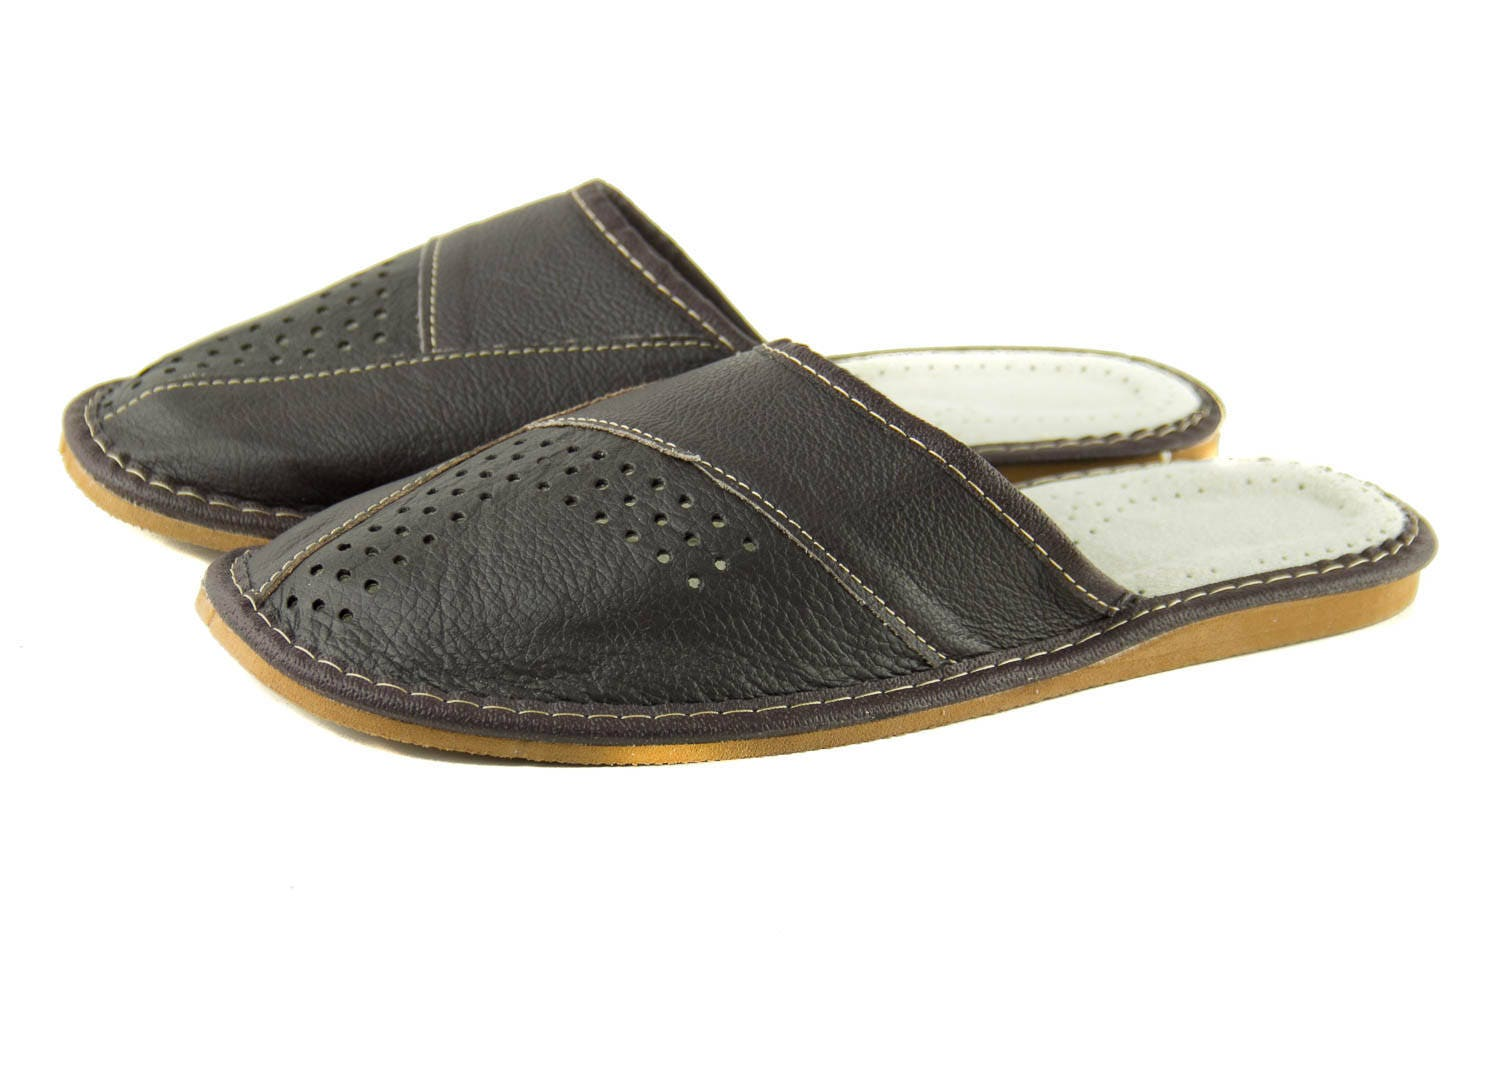 NEW MEN'S NATURAL LEATHER SLIPPERS BROWN